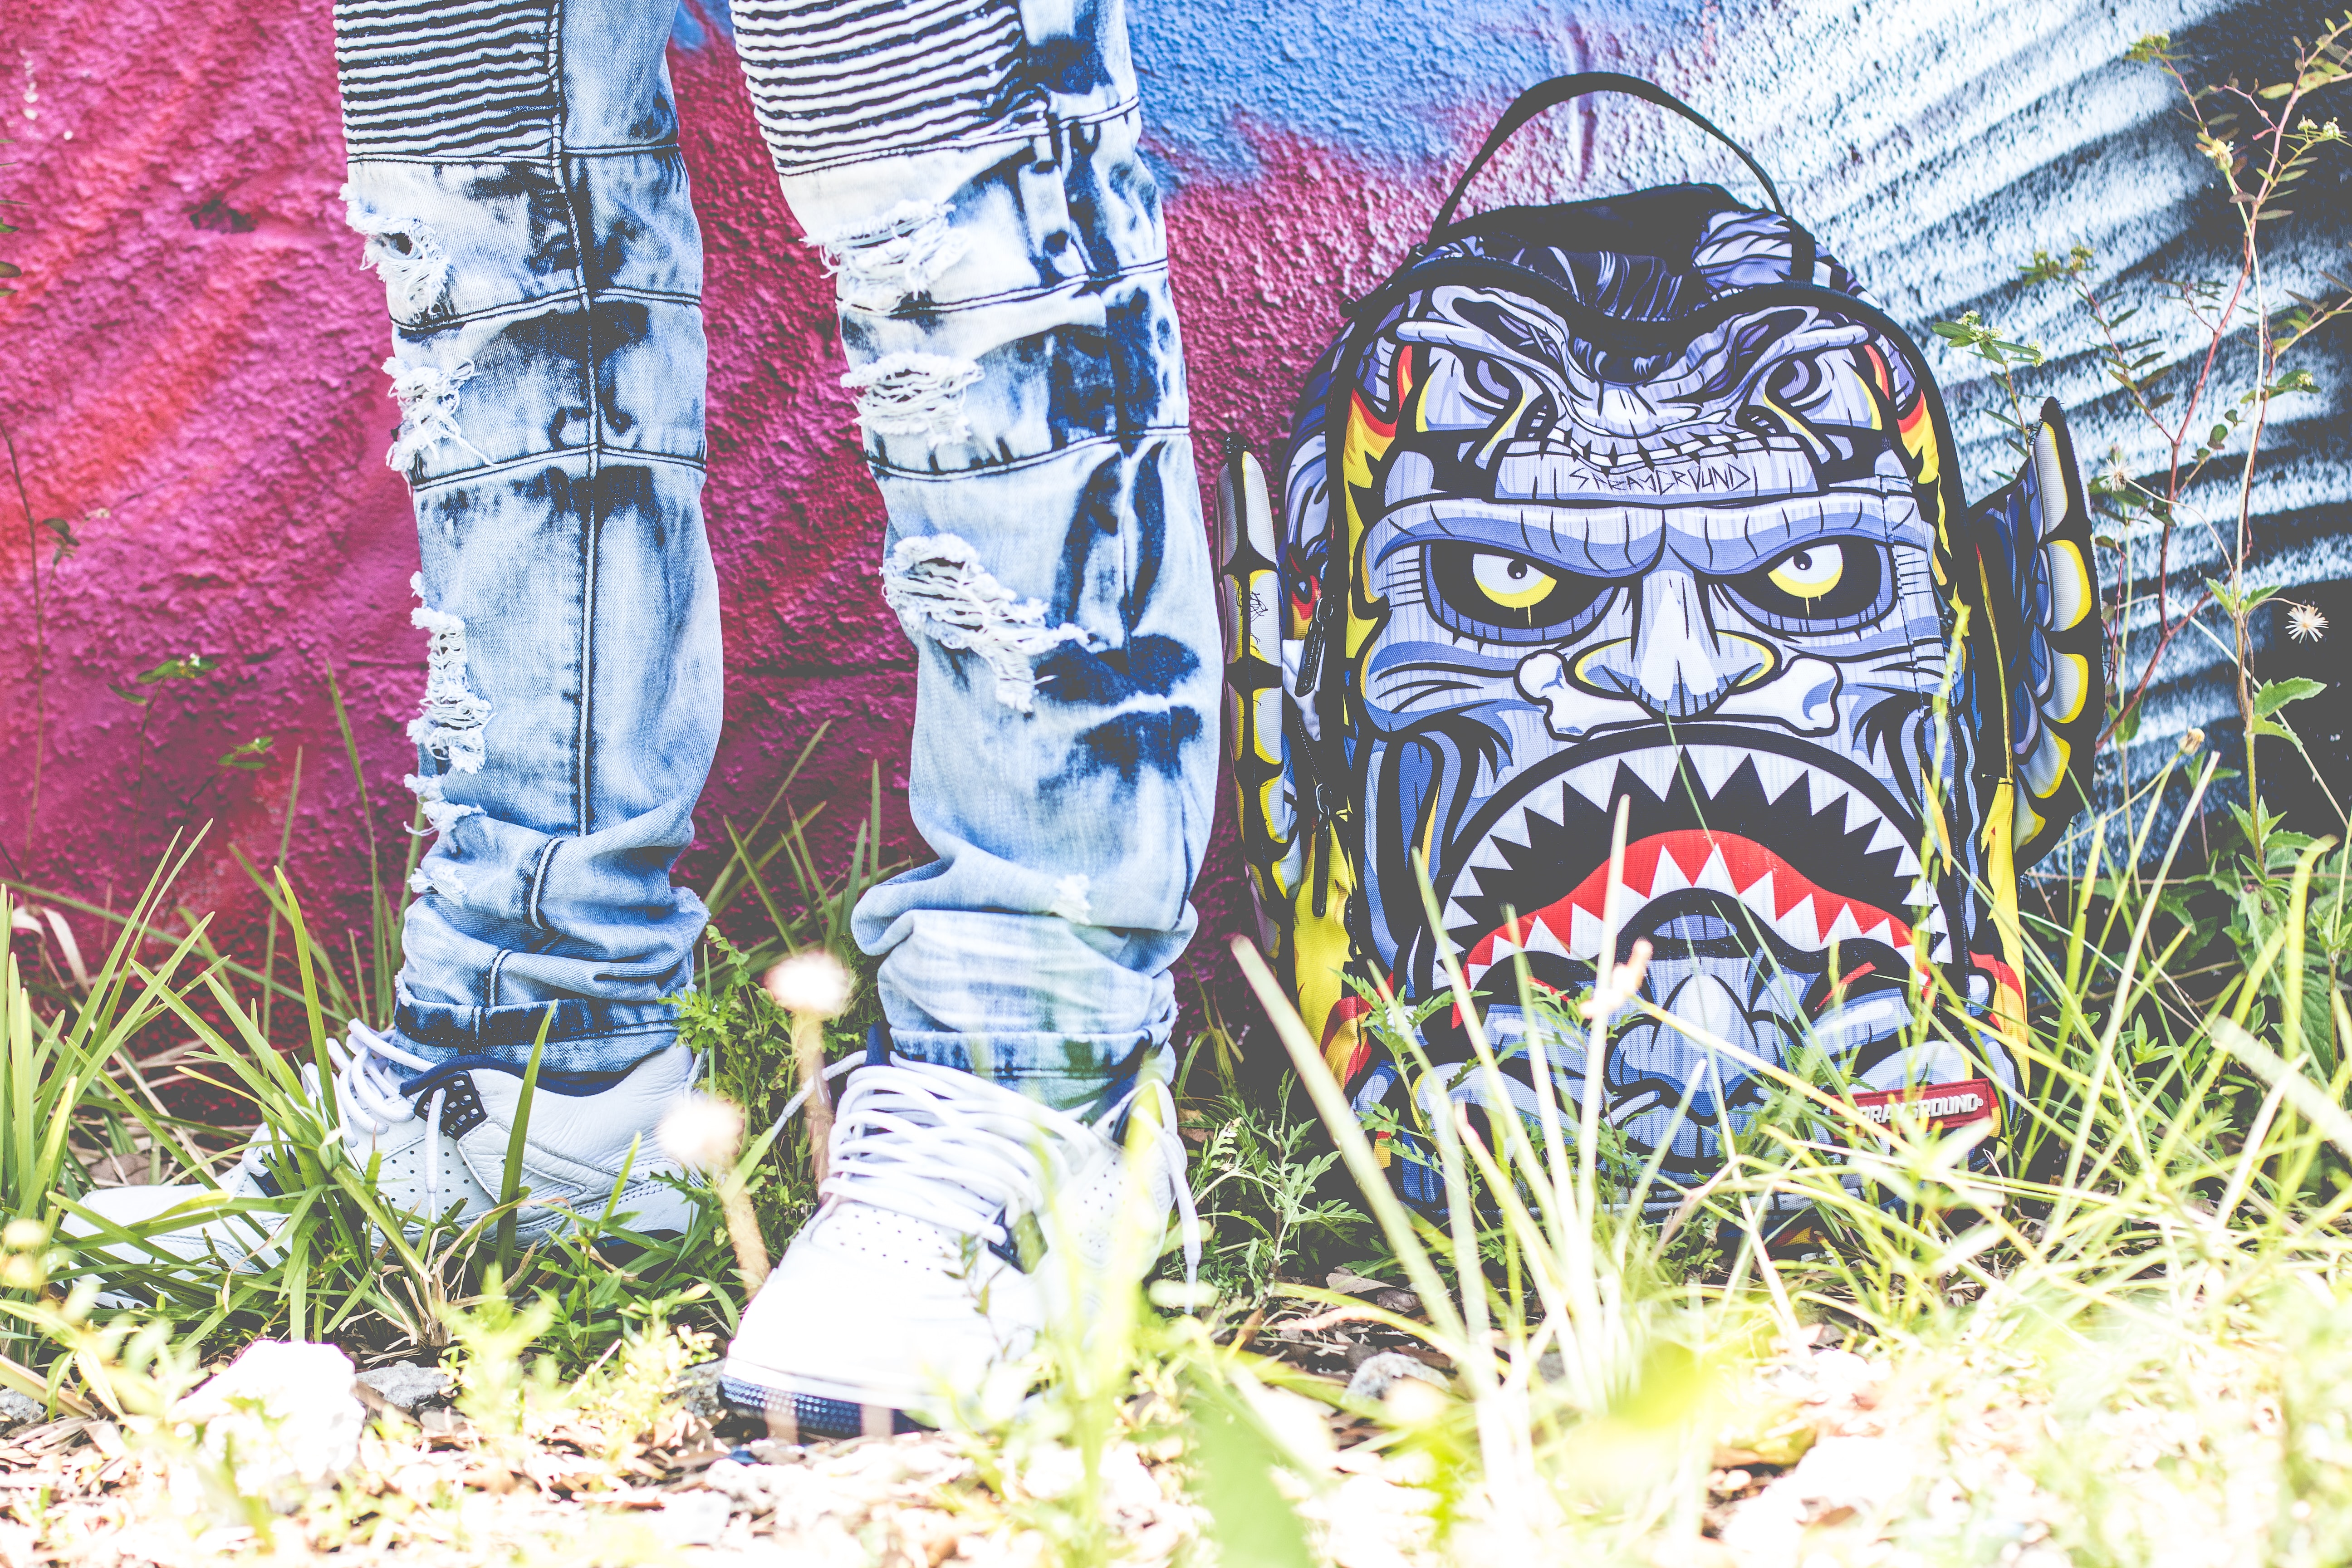 A person standing in front of a piece of graffiti art of a blue monster with sharp triangular teeth.